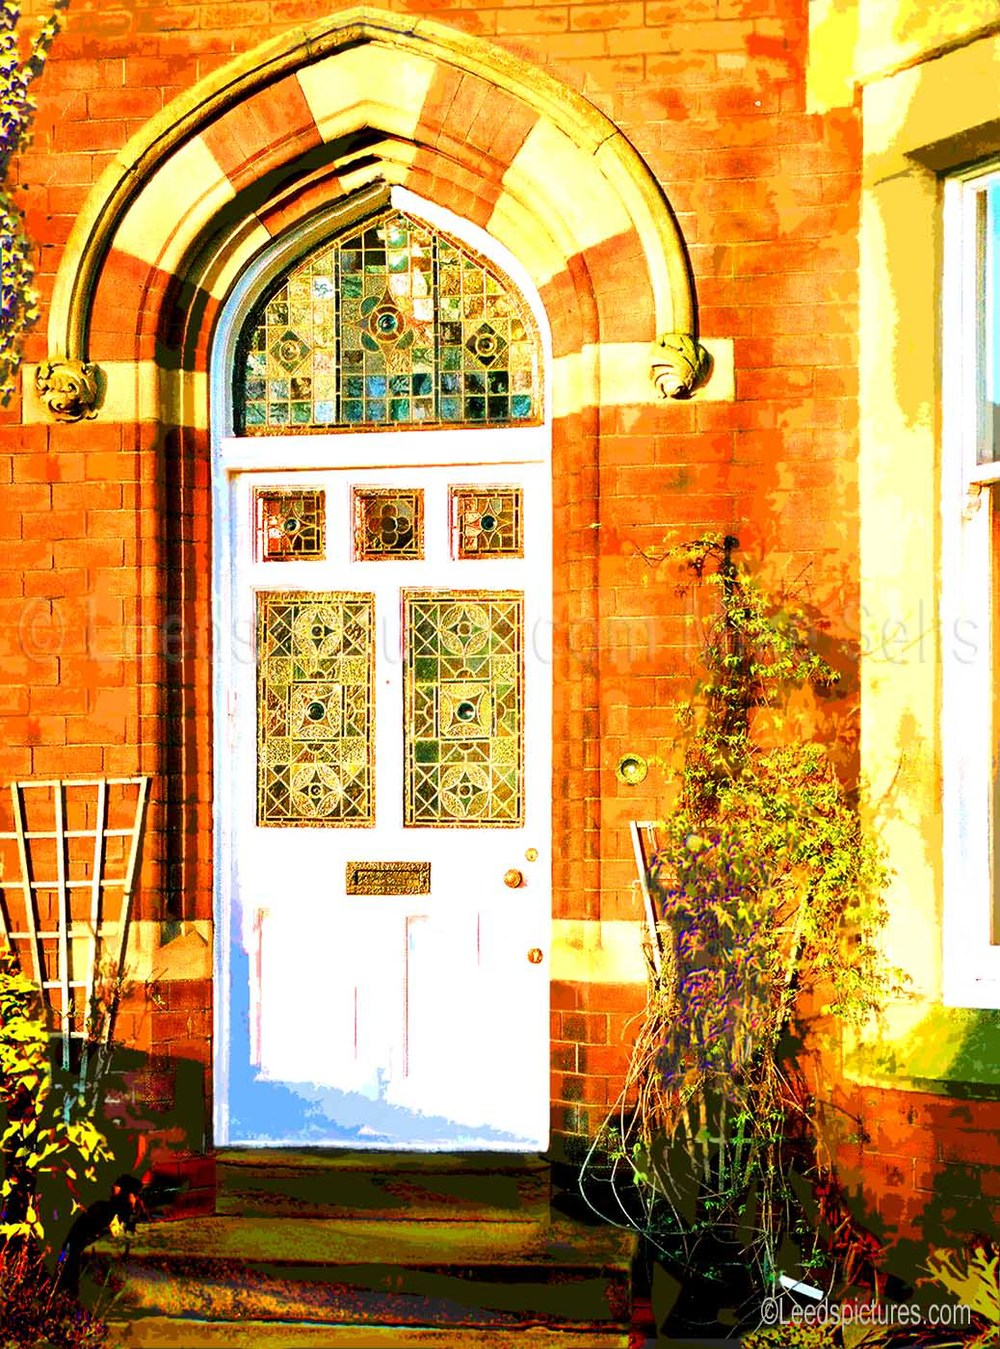 Victorian doorway on Otley Road    The last rays of the sun just reaching this perfect doorway on a terrace up by St Chad's